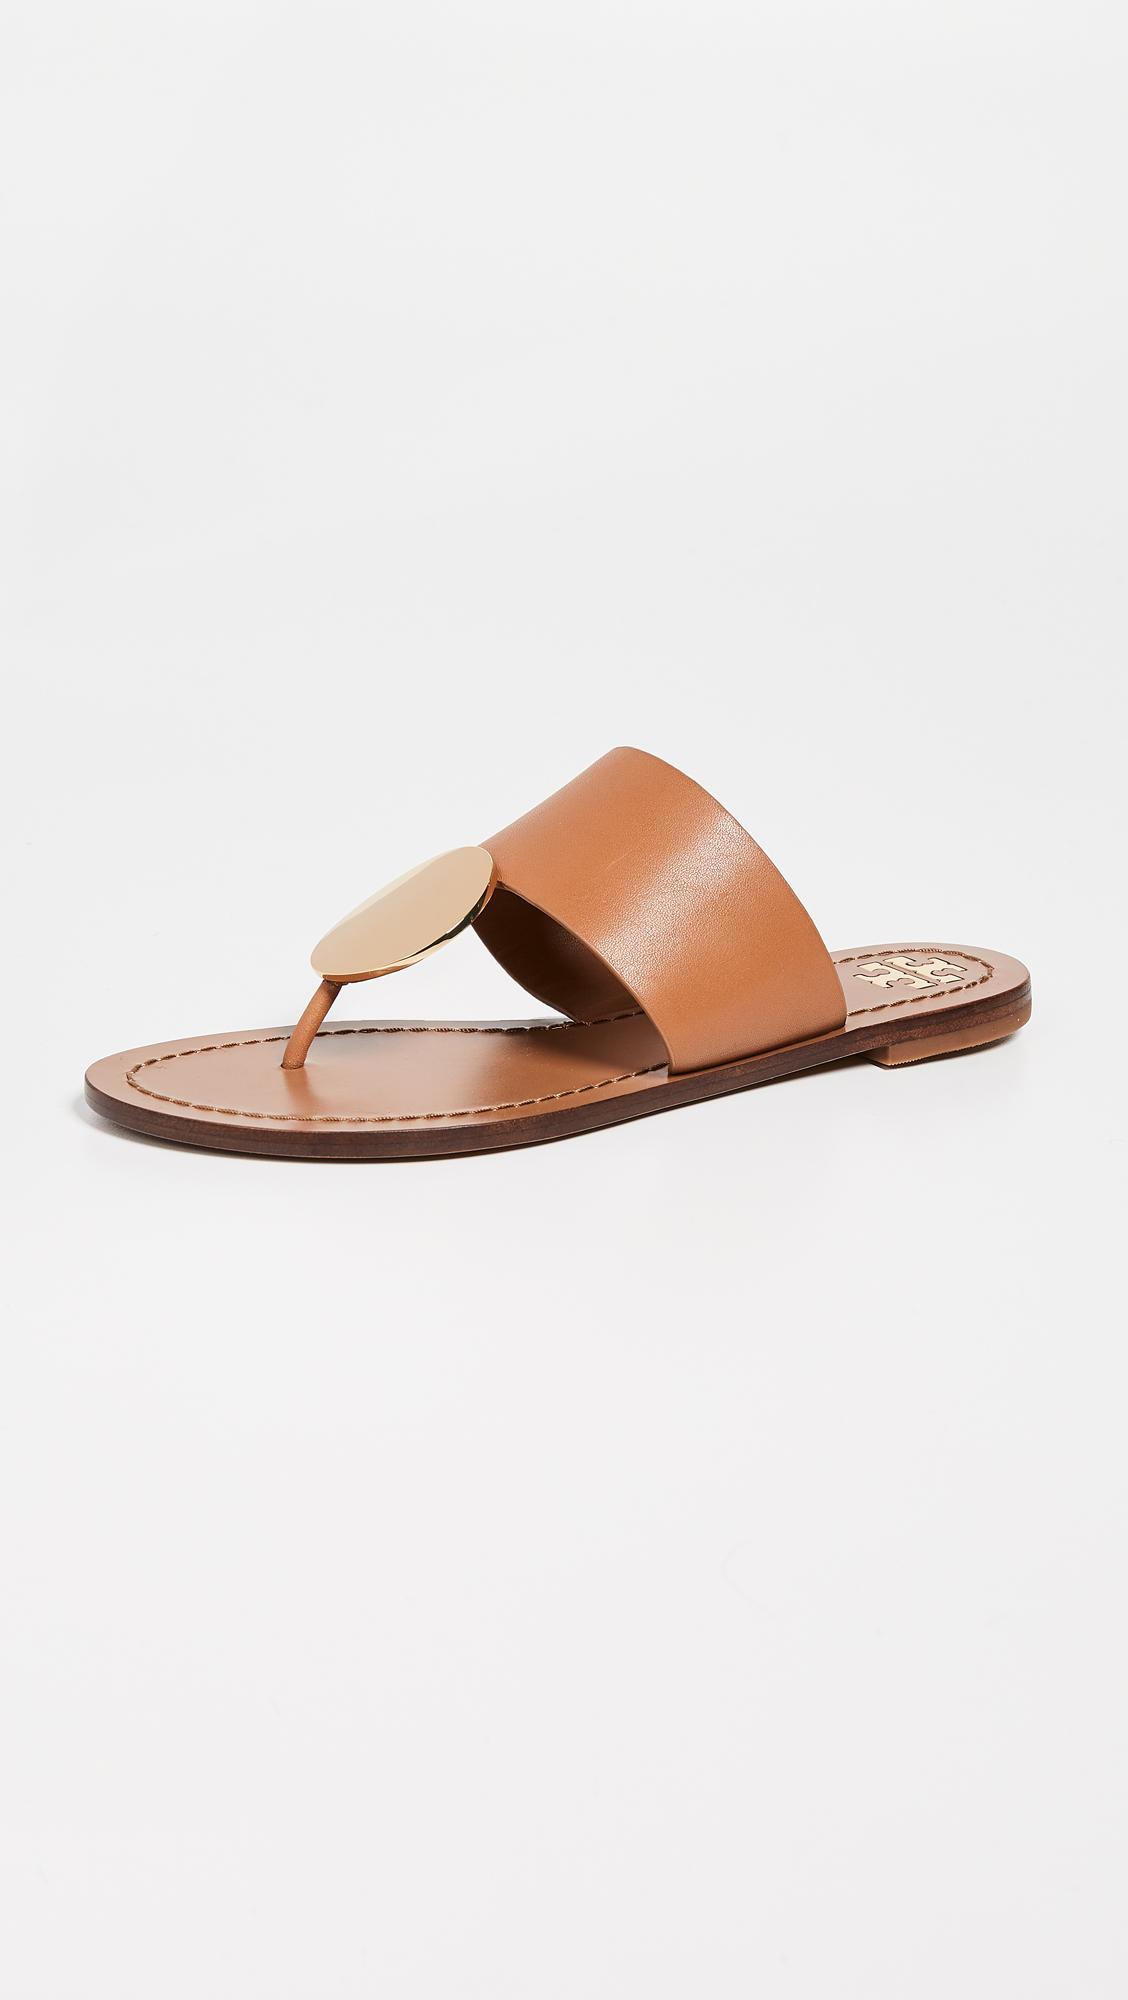 6f0c4b64483 Lyst - Tory Burch Patos Disk Sandals in Brown